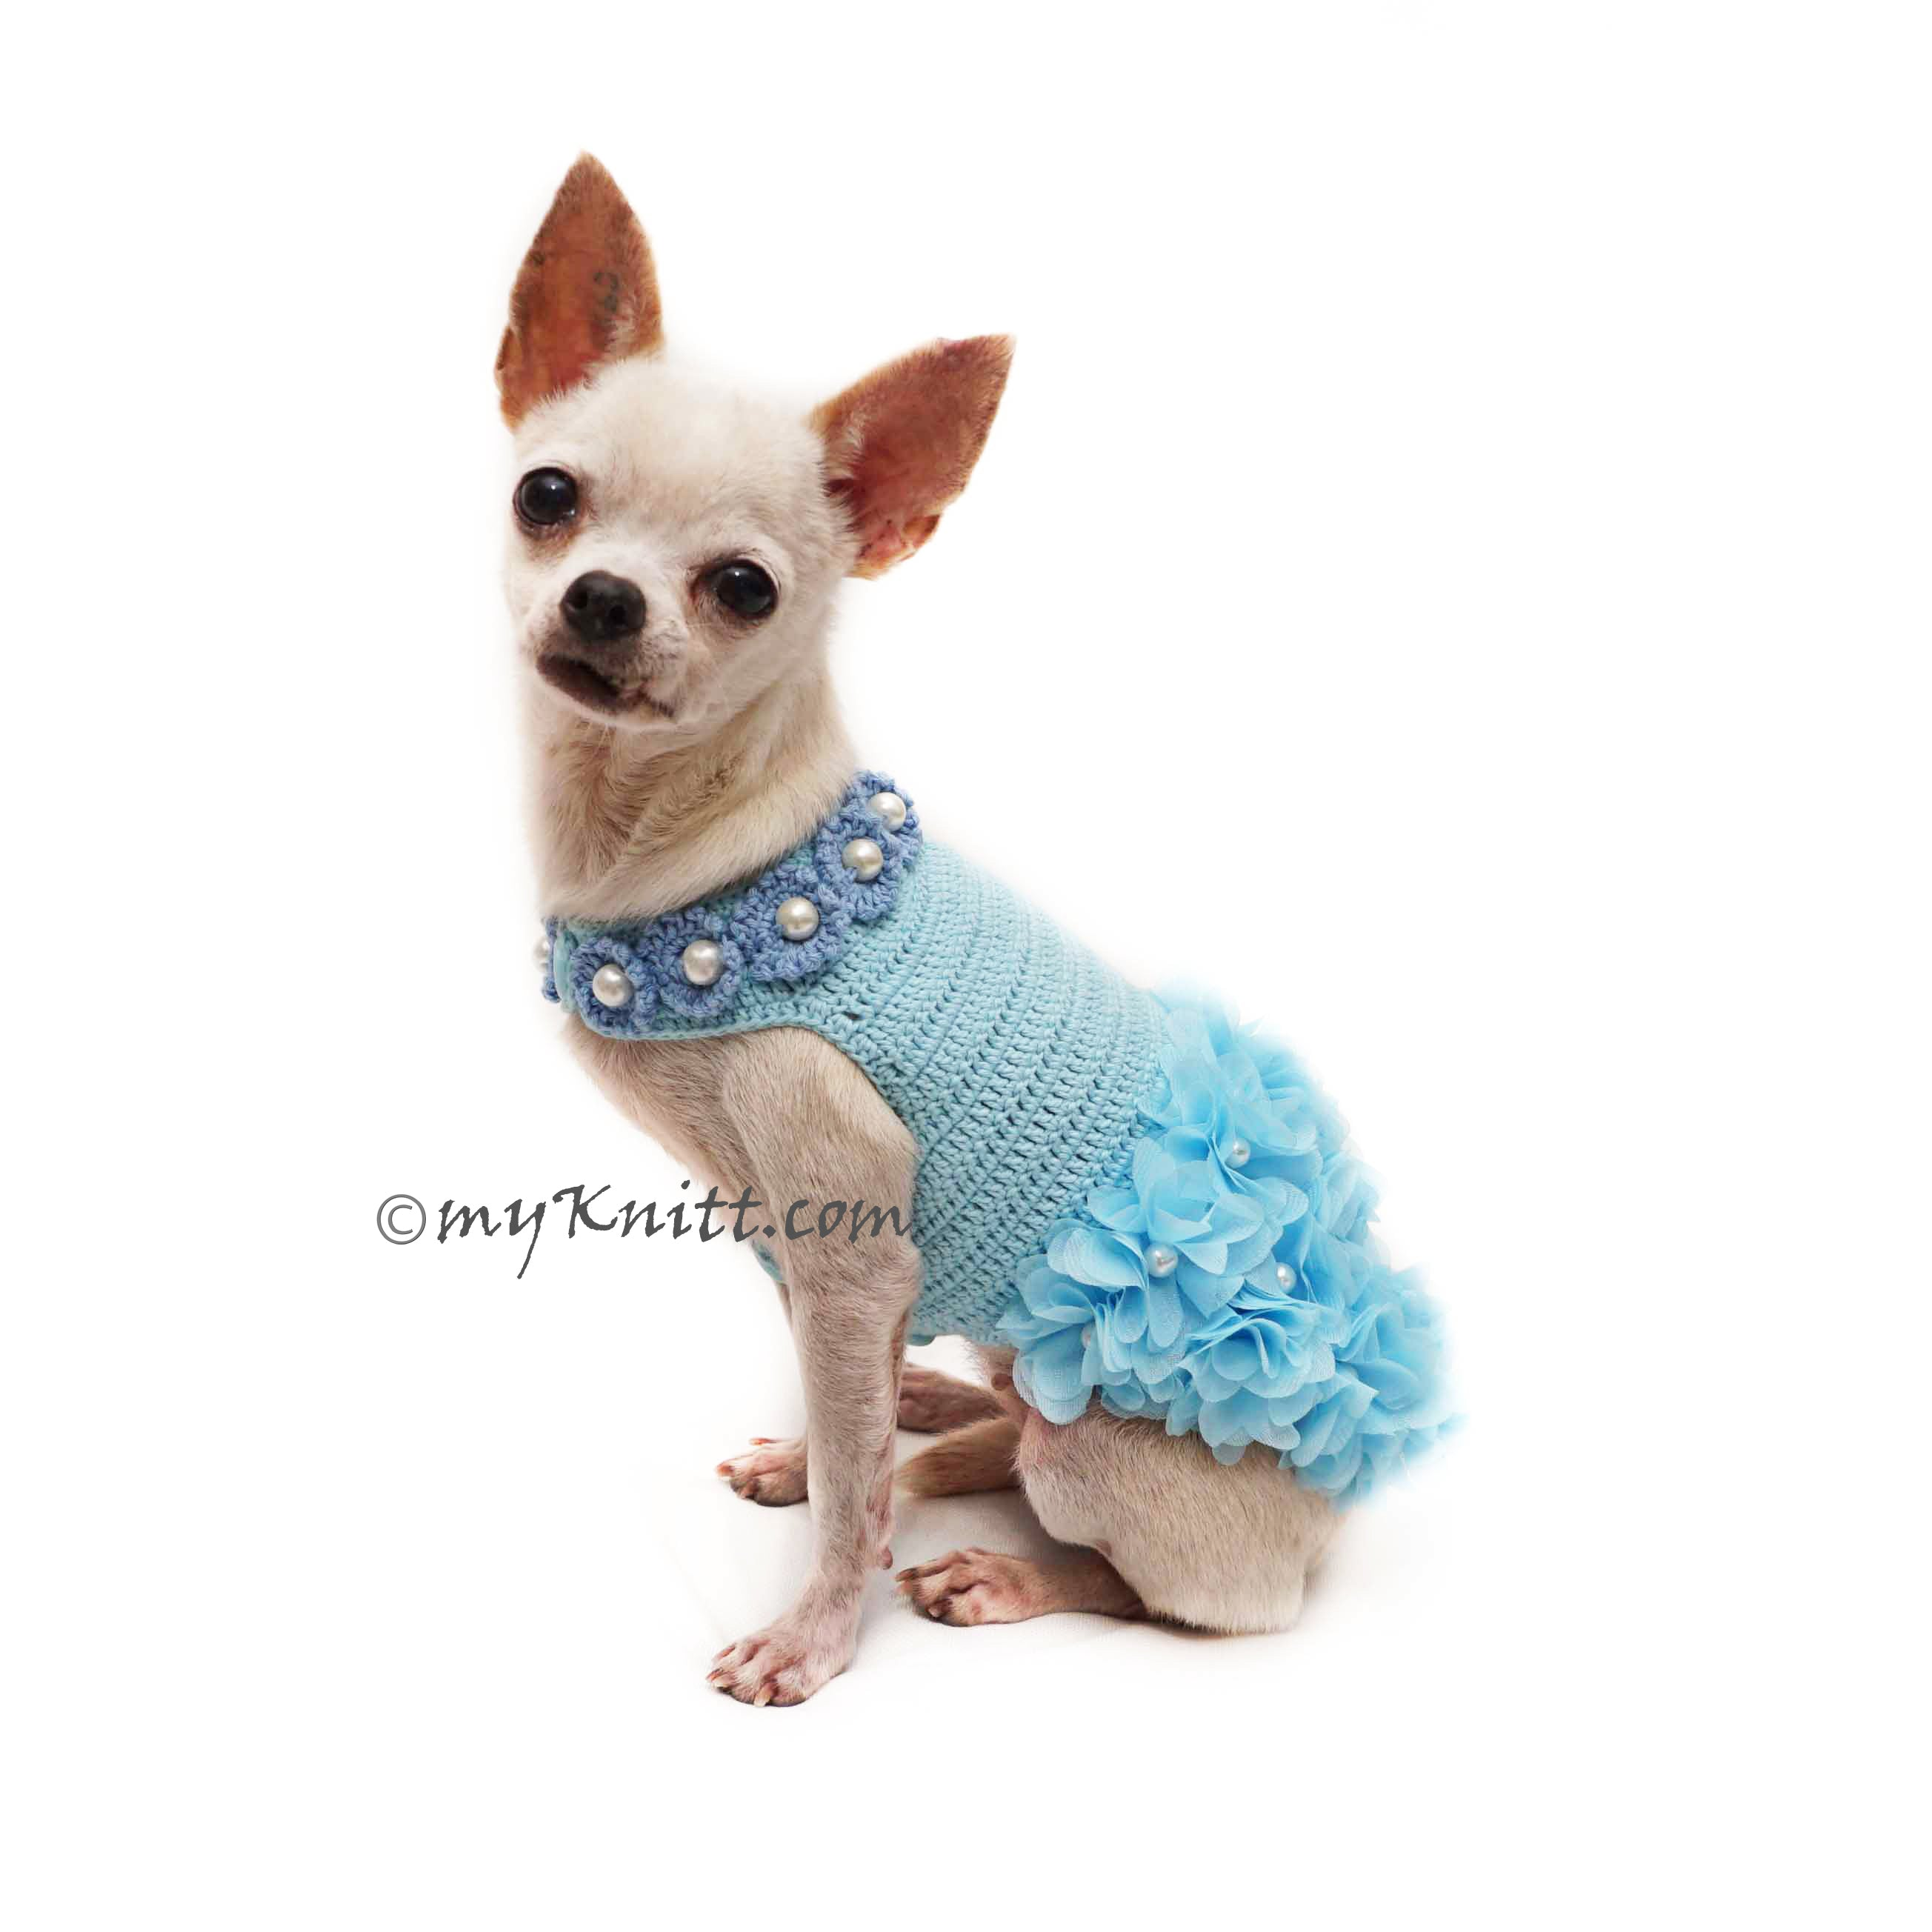 Hawaiian Baby Blue Dog Dress Crochet Myknitt